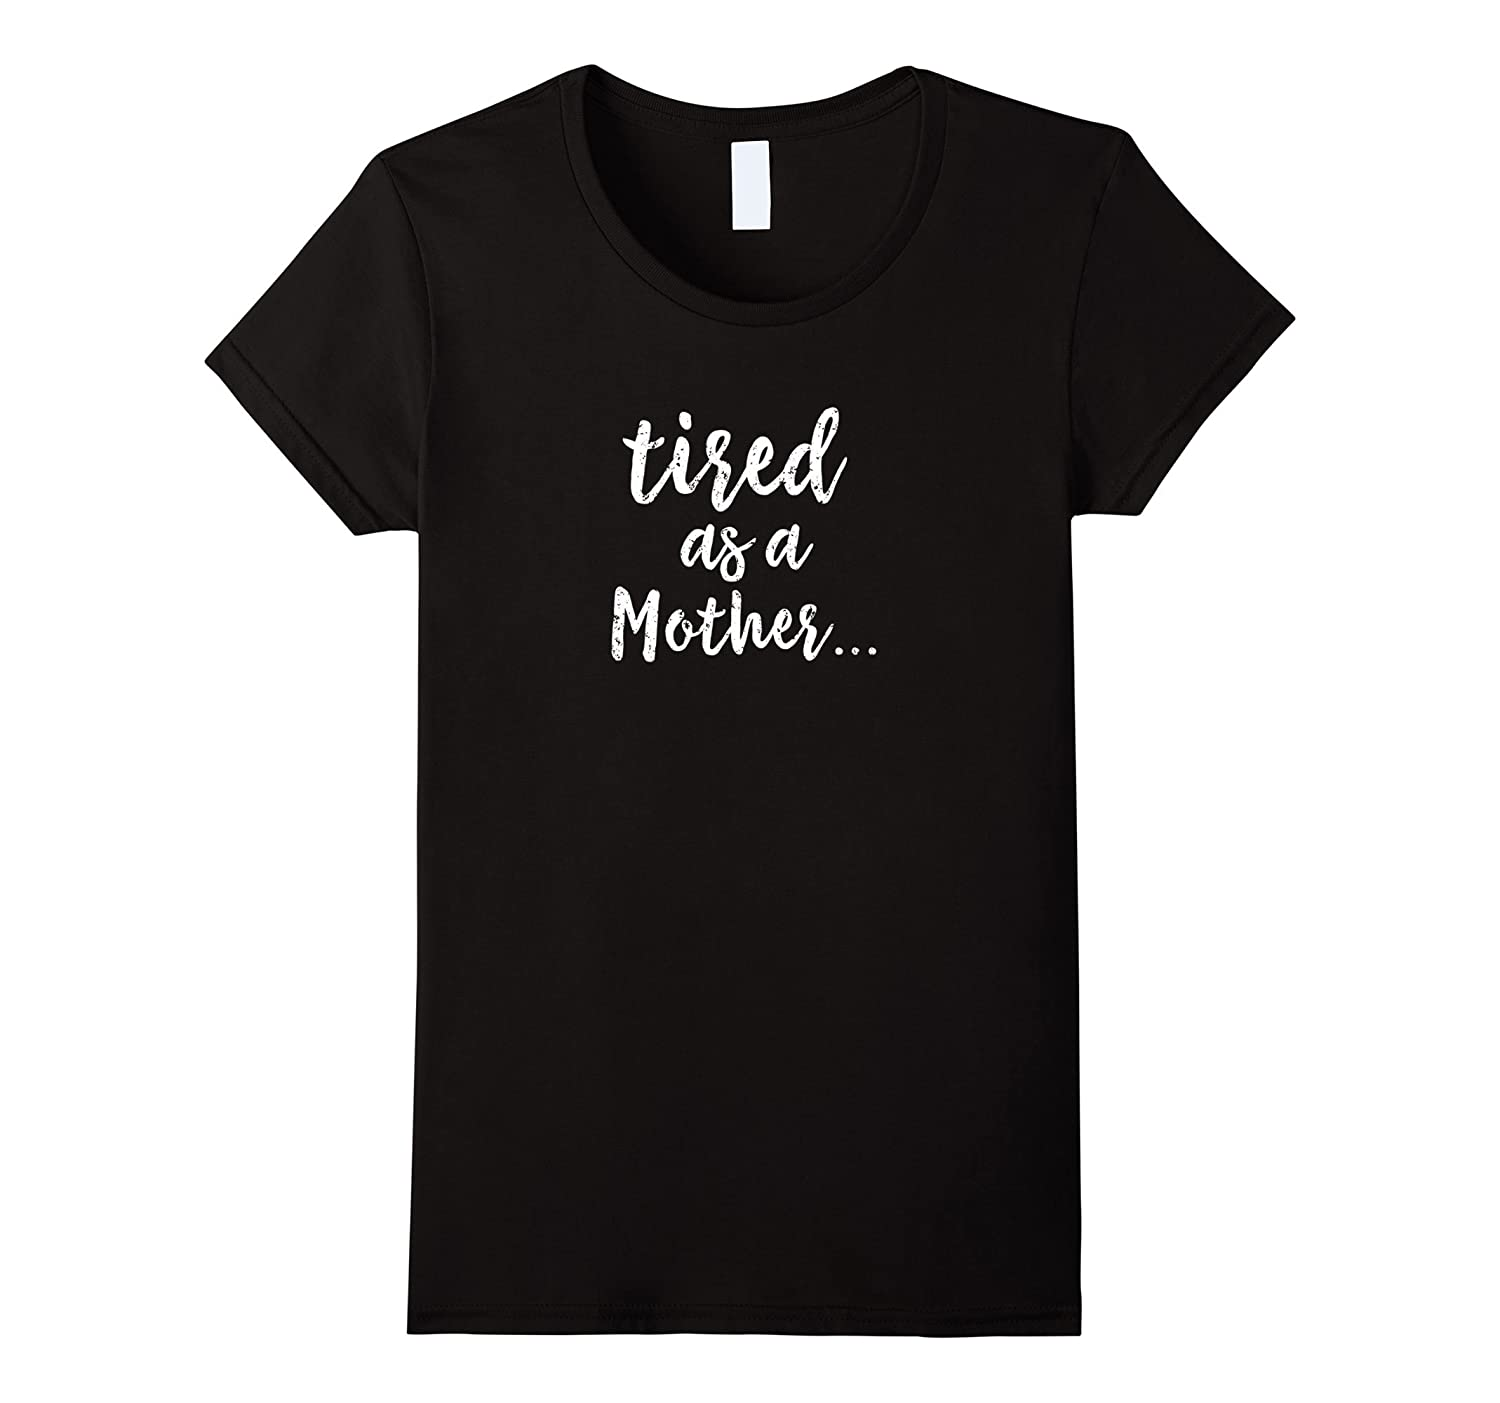 DISTRESSED STYLE Tired as a Mother TShirt for Women or Men